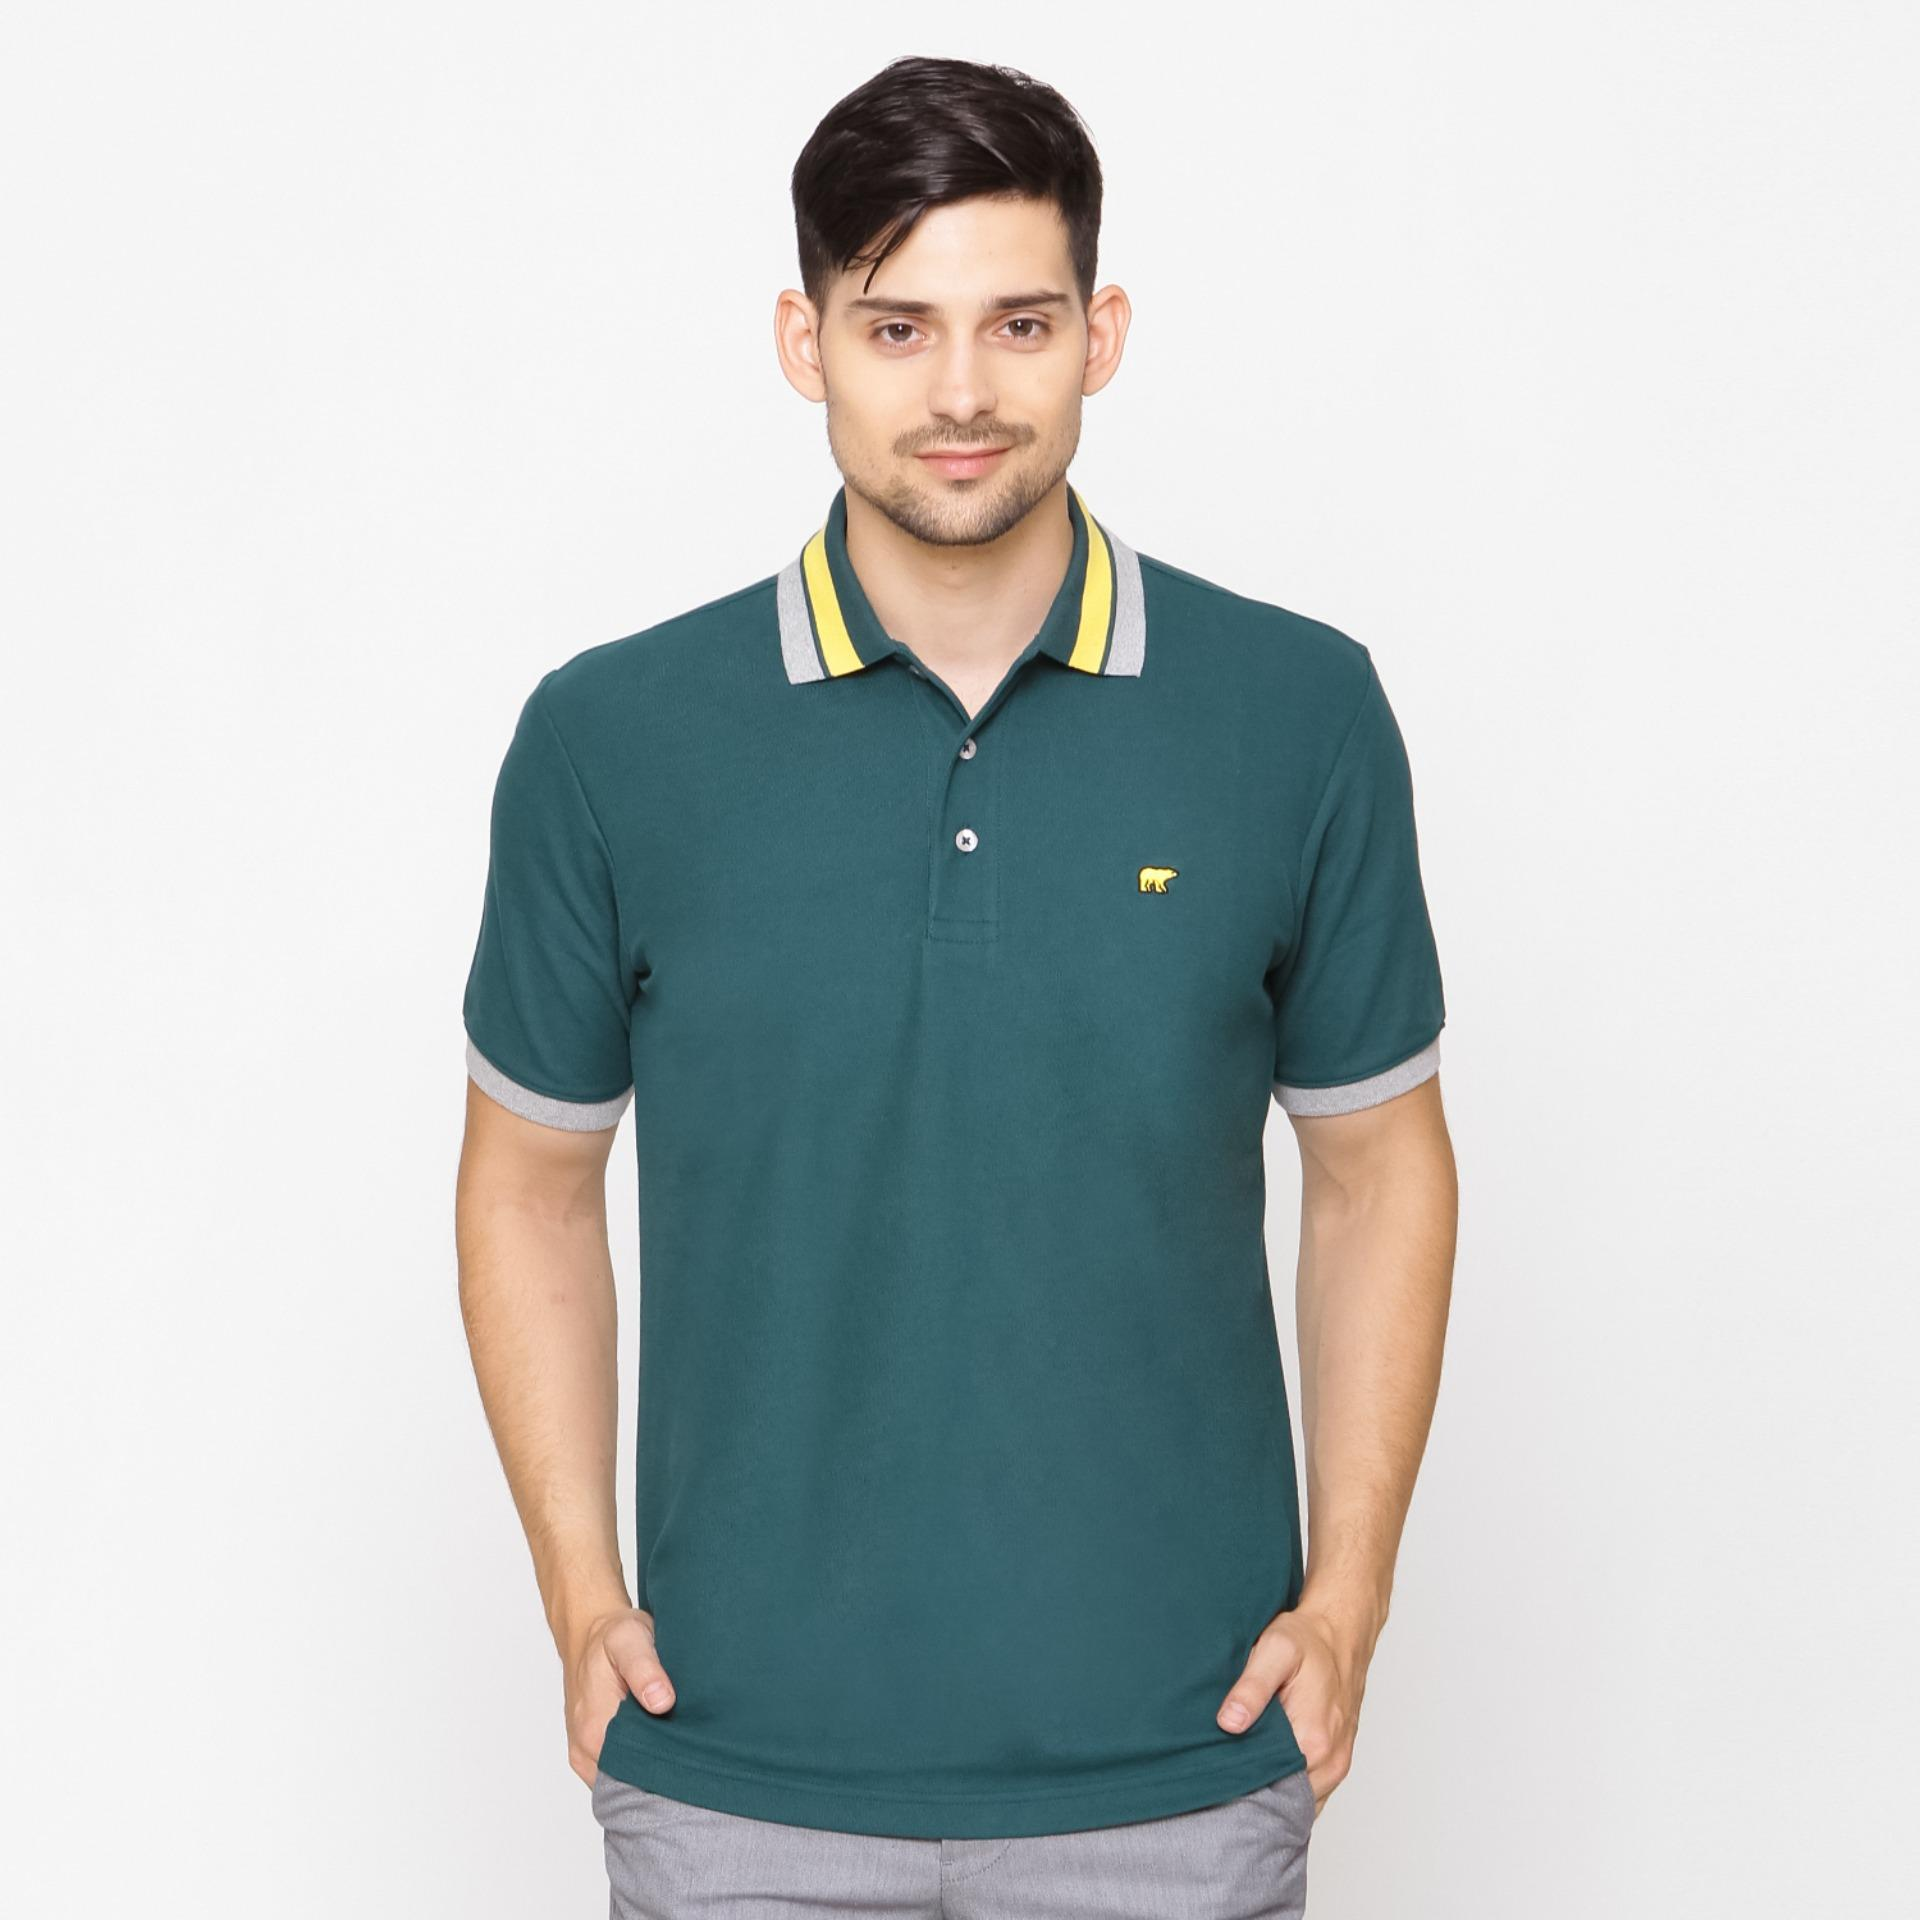 Review Toko Jack Nicklaus Ohio 2 Panderosa Polo Shirt